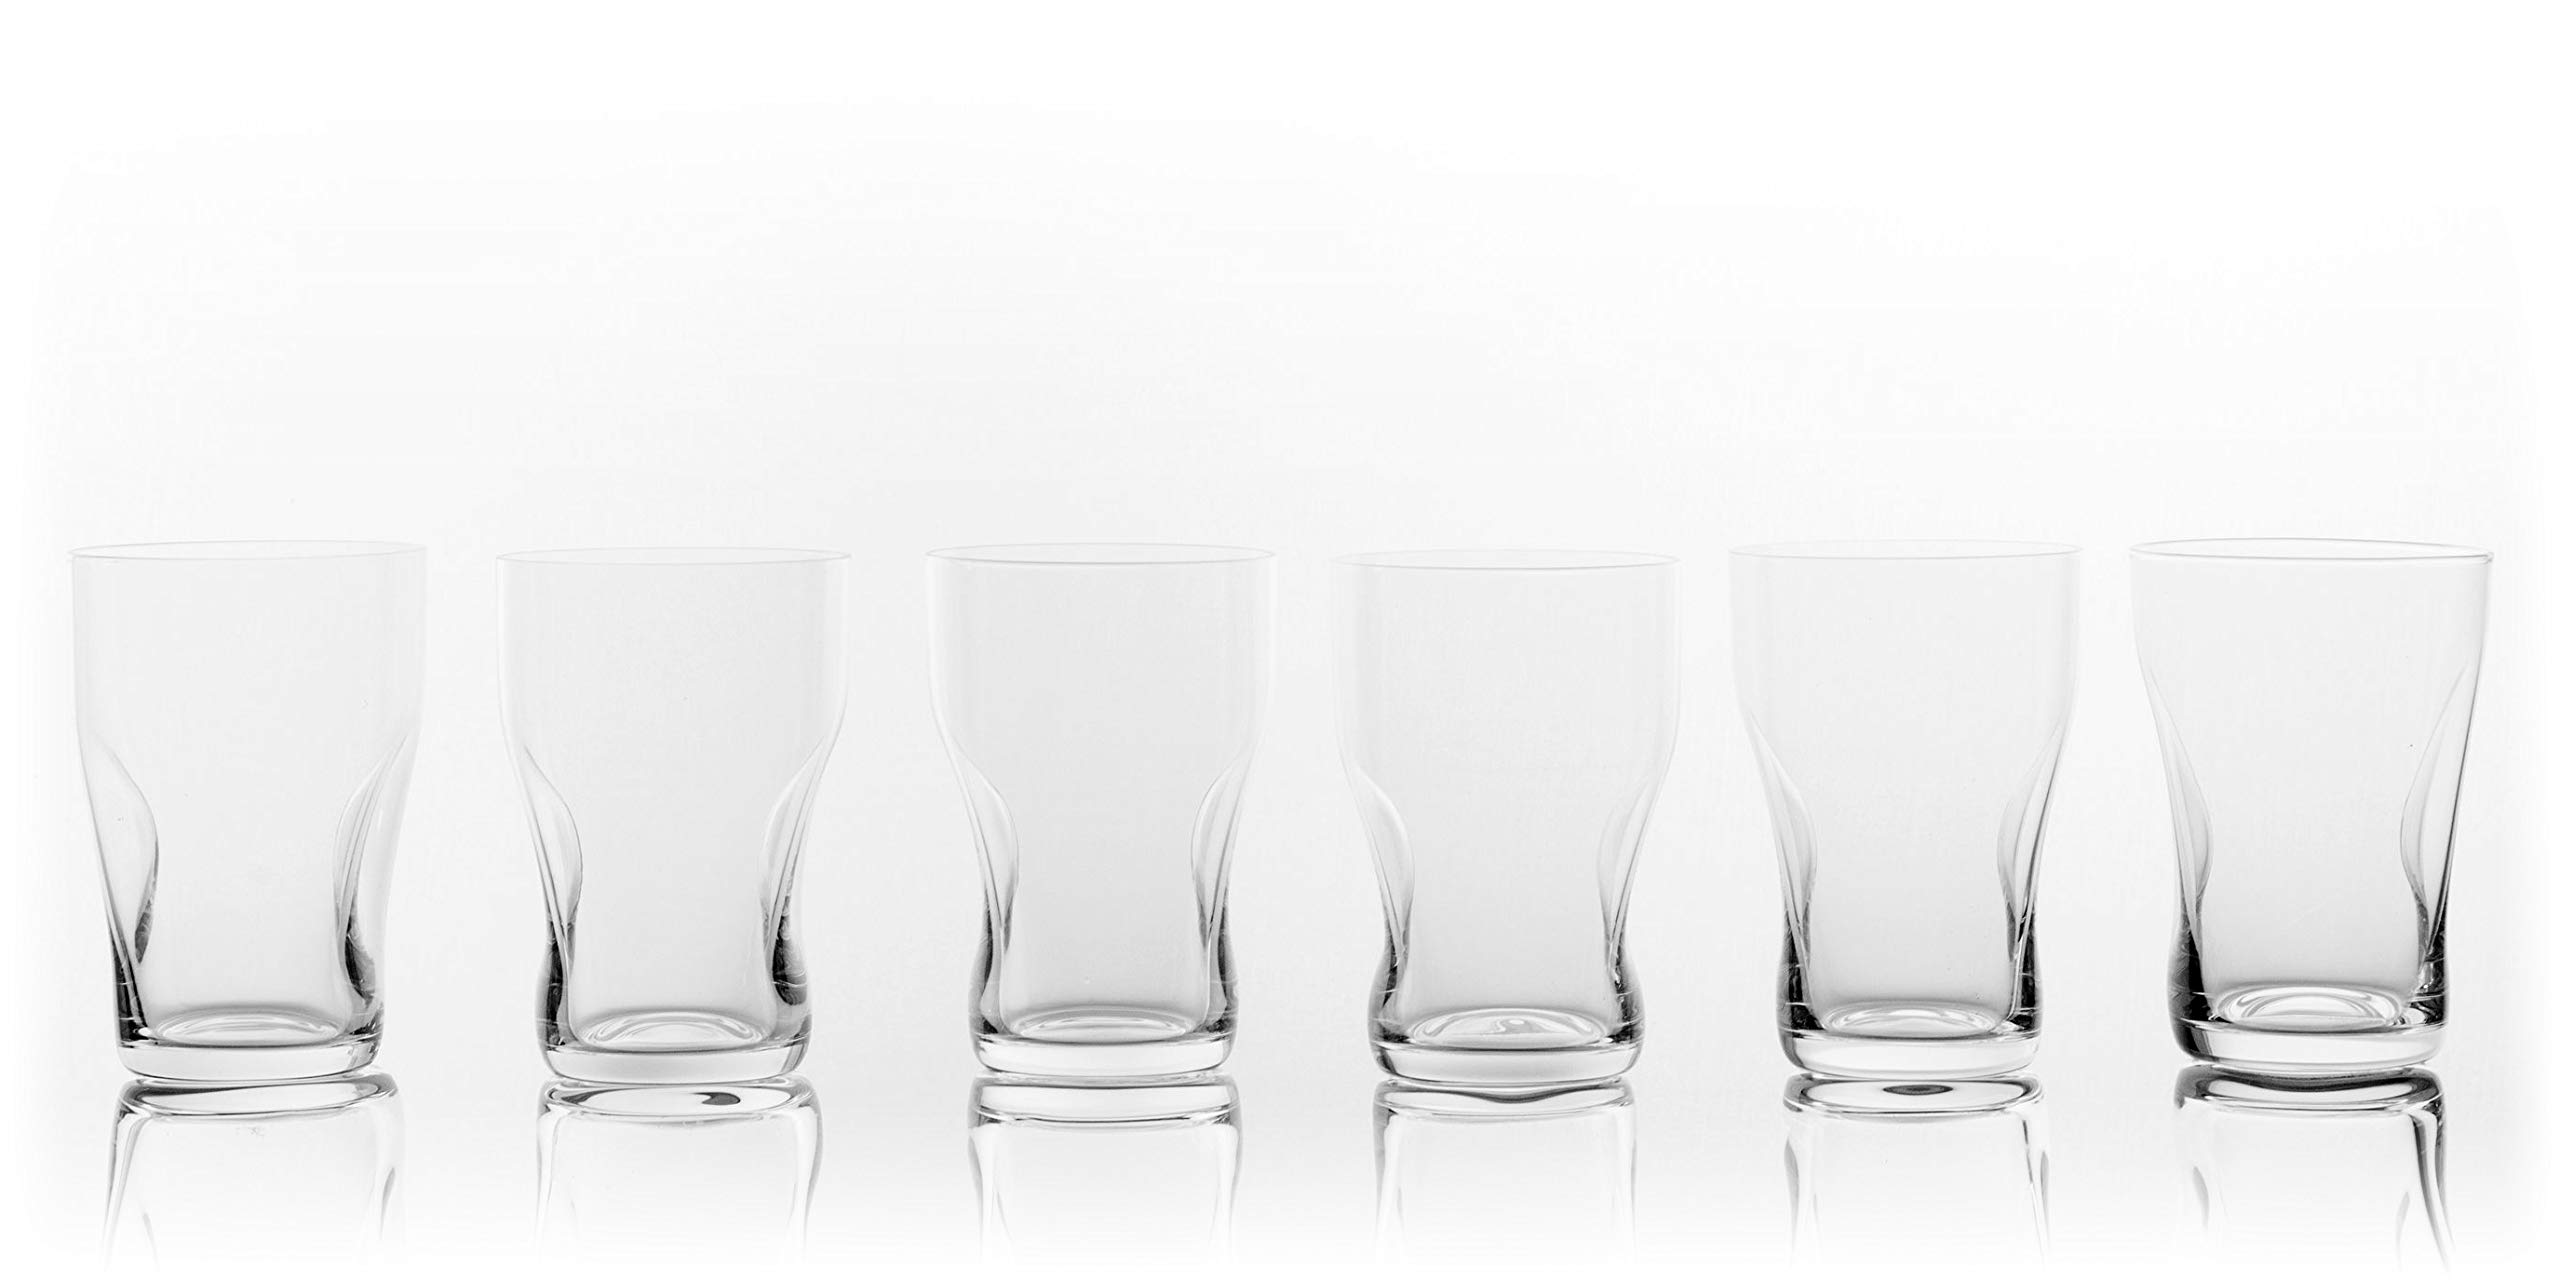 Gabriel-Glas - Highball Glass 500 ml - Set of 6 - Aqua Collection - Mouth-Blown - Lead-free Crystal Glass from Austria